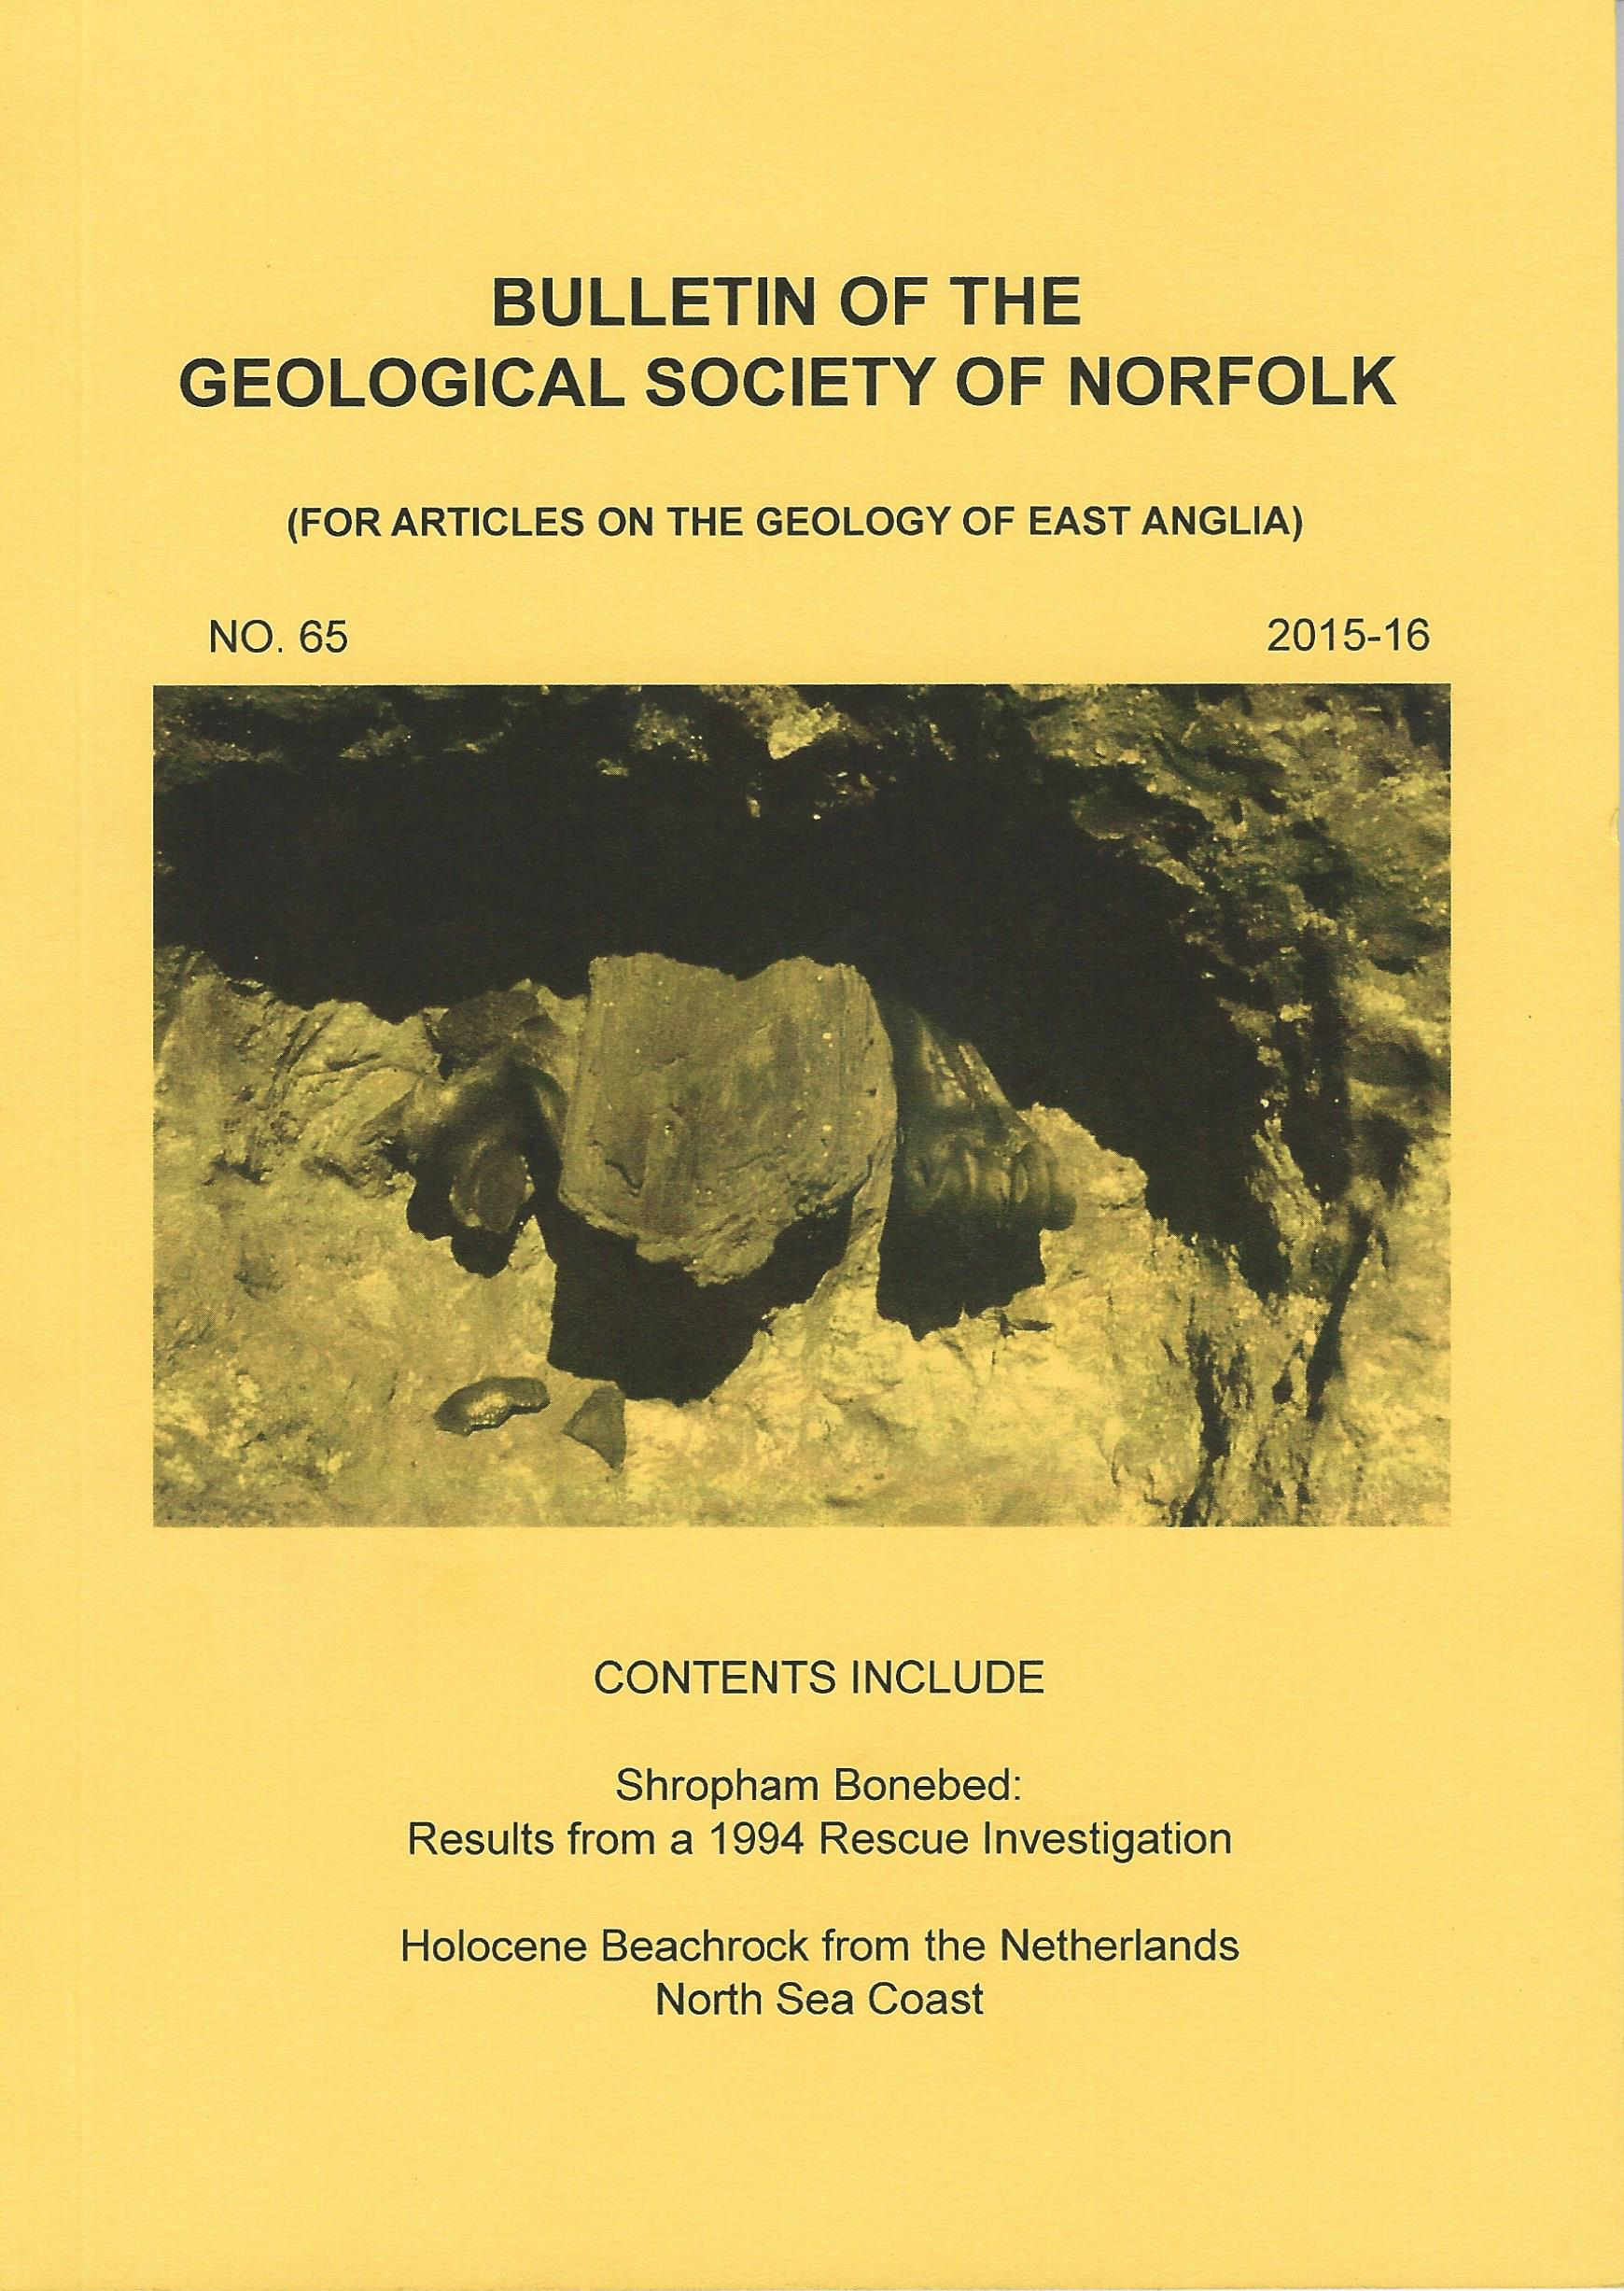 Bulletin of the Geological Society of Norfolk. - No. 65 (2015-16)